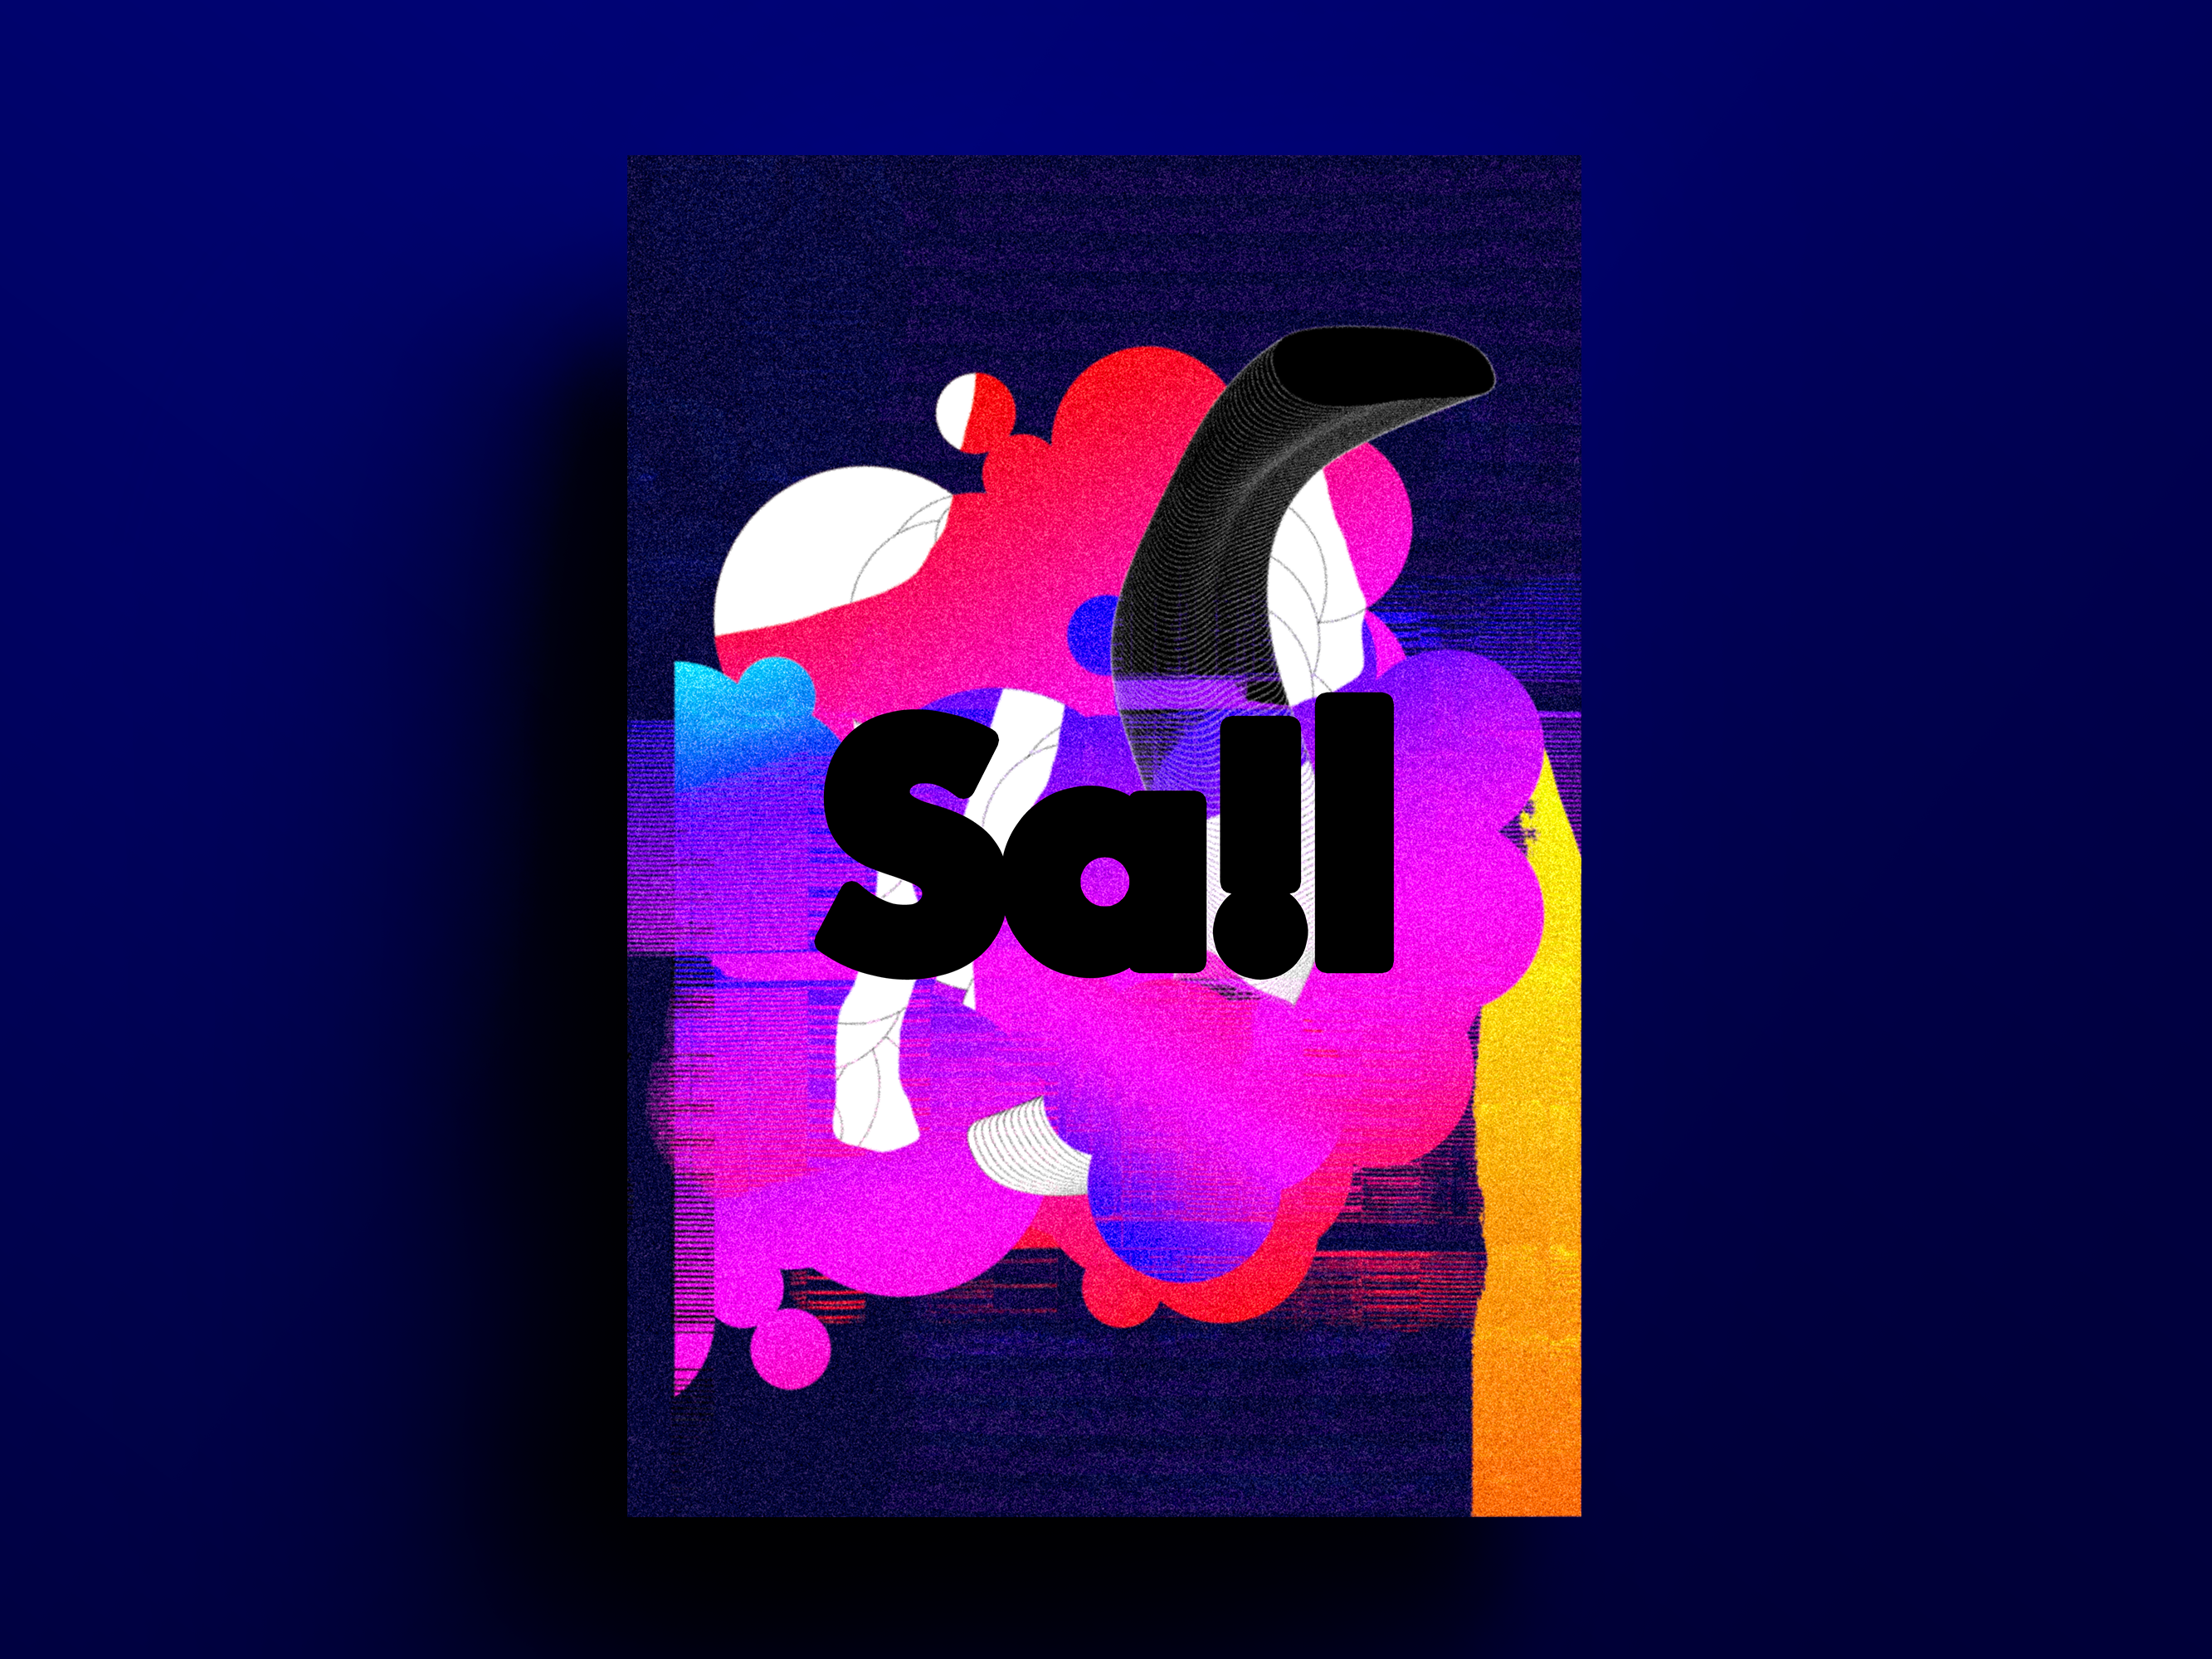 Poster Series Entry 03